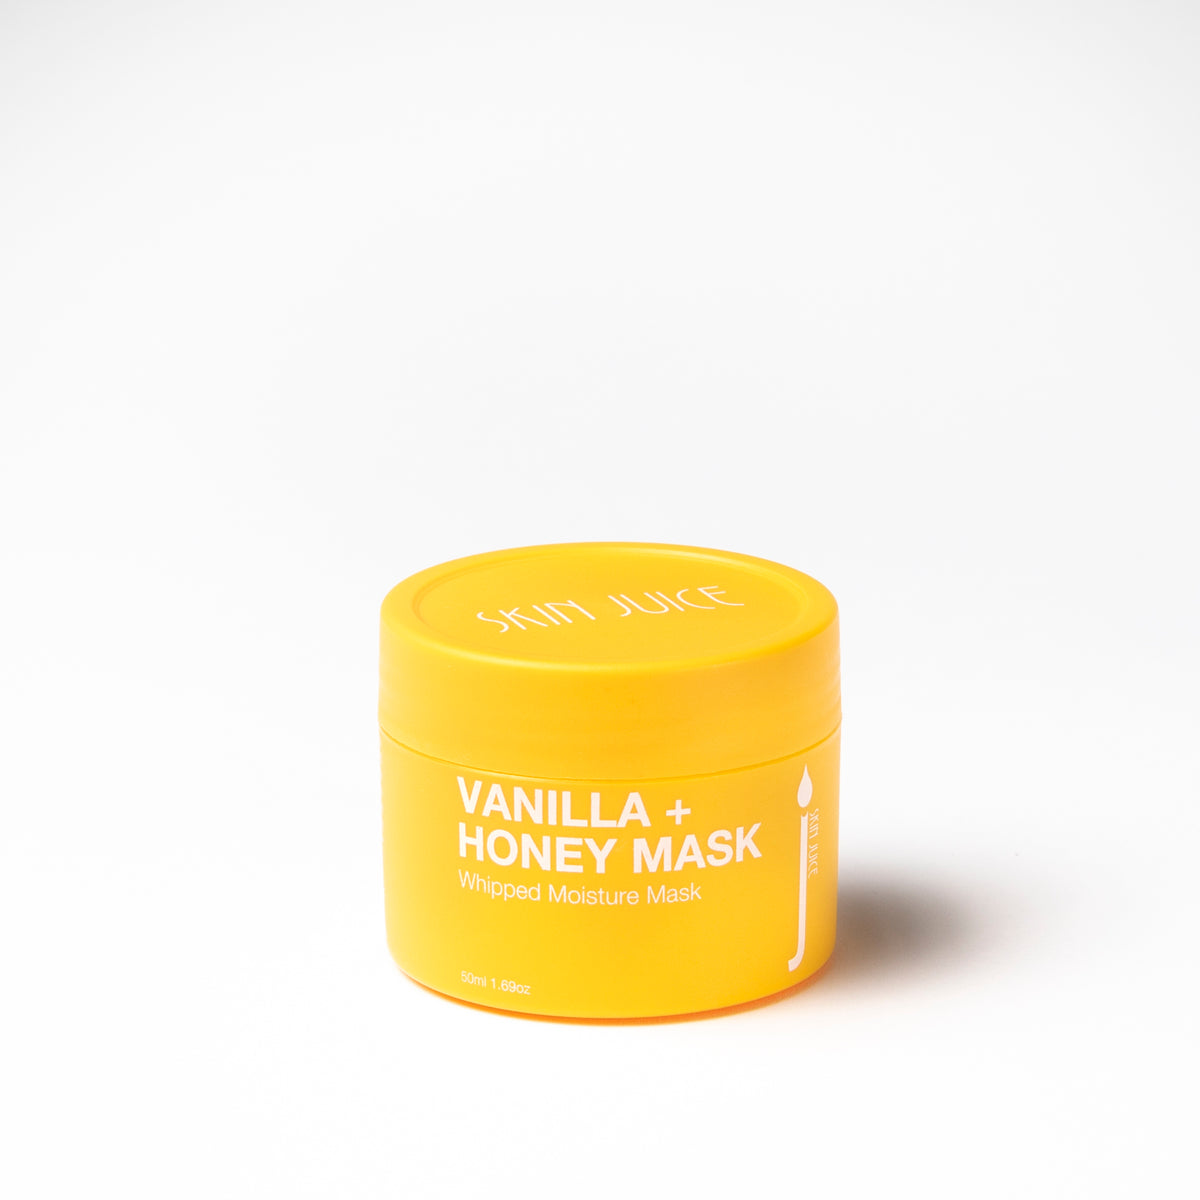 Skin Juice Vanilla and Honey Mask 50ml. Organic and cosmeceutical grade skincare. Available at Skinbase Beauty